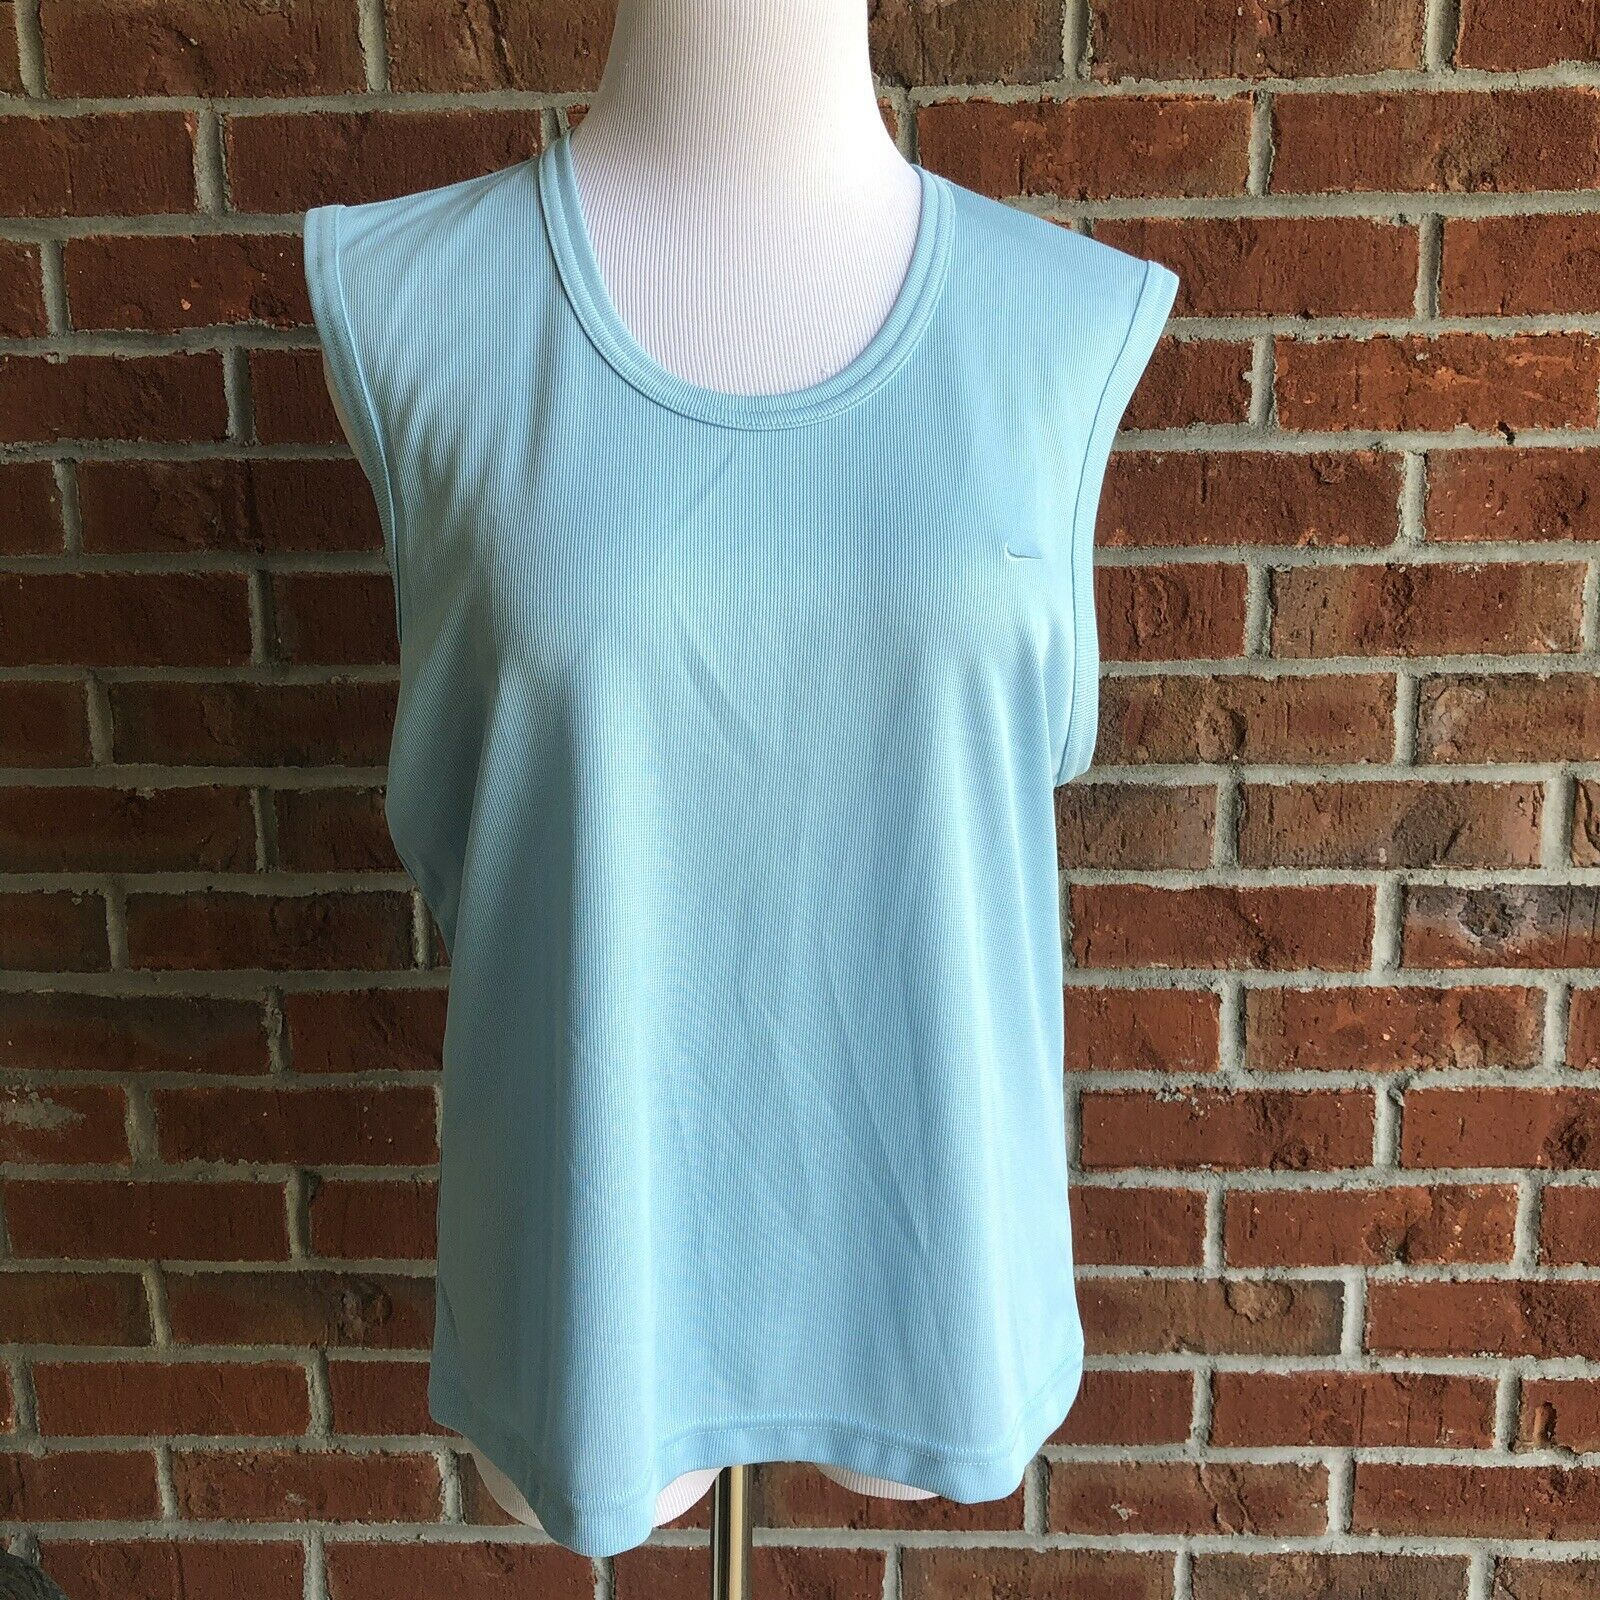 Primary image for Nike Dri-Fit Knit Tank Top - Size XL (16-18) see measurements